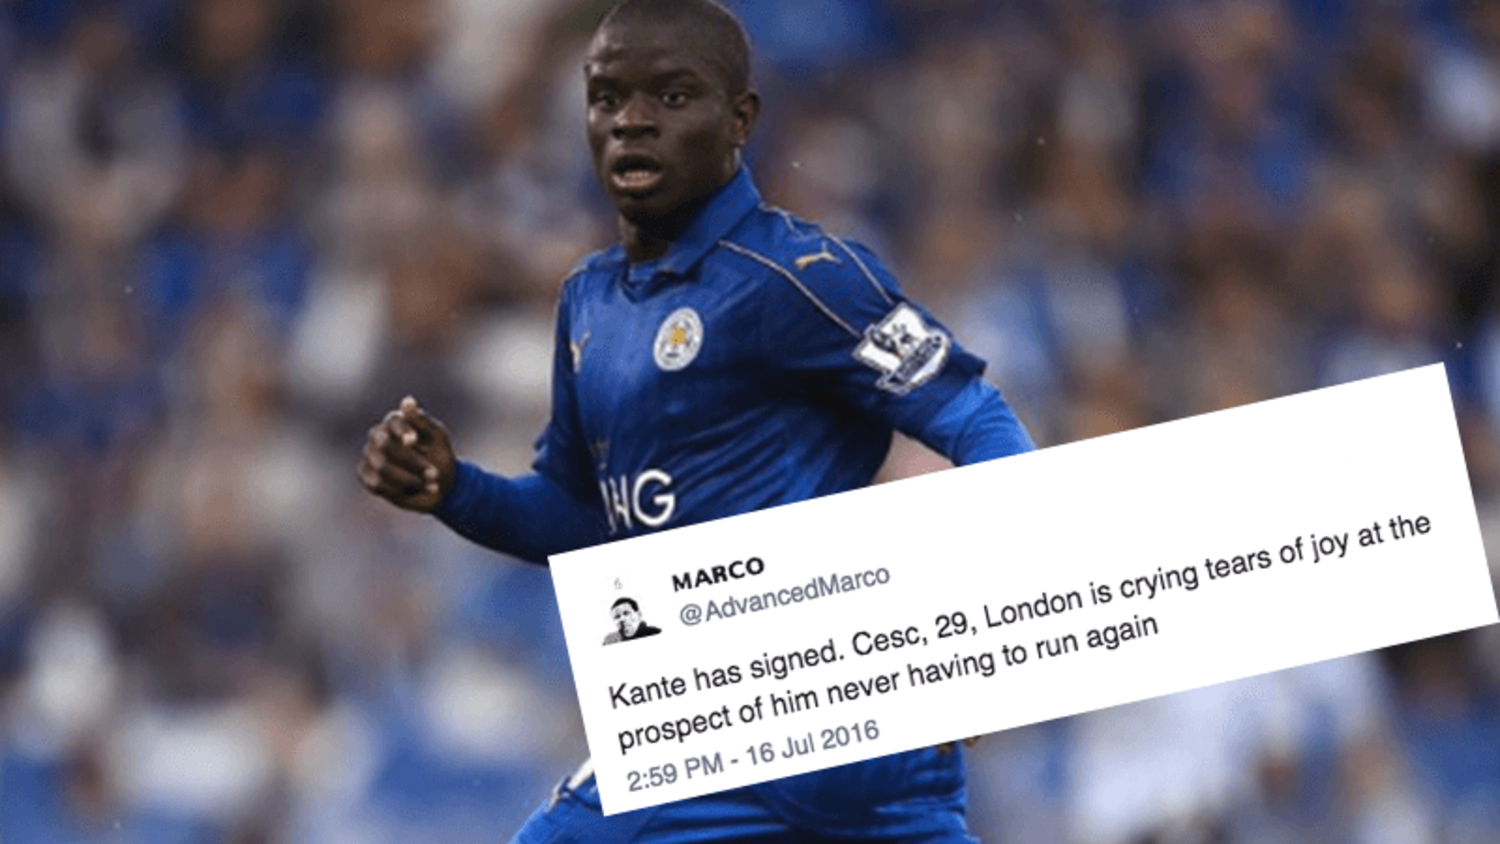 How the internet reacted to Chelsea s capture of N Golo Kante • Copa90